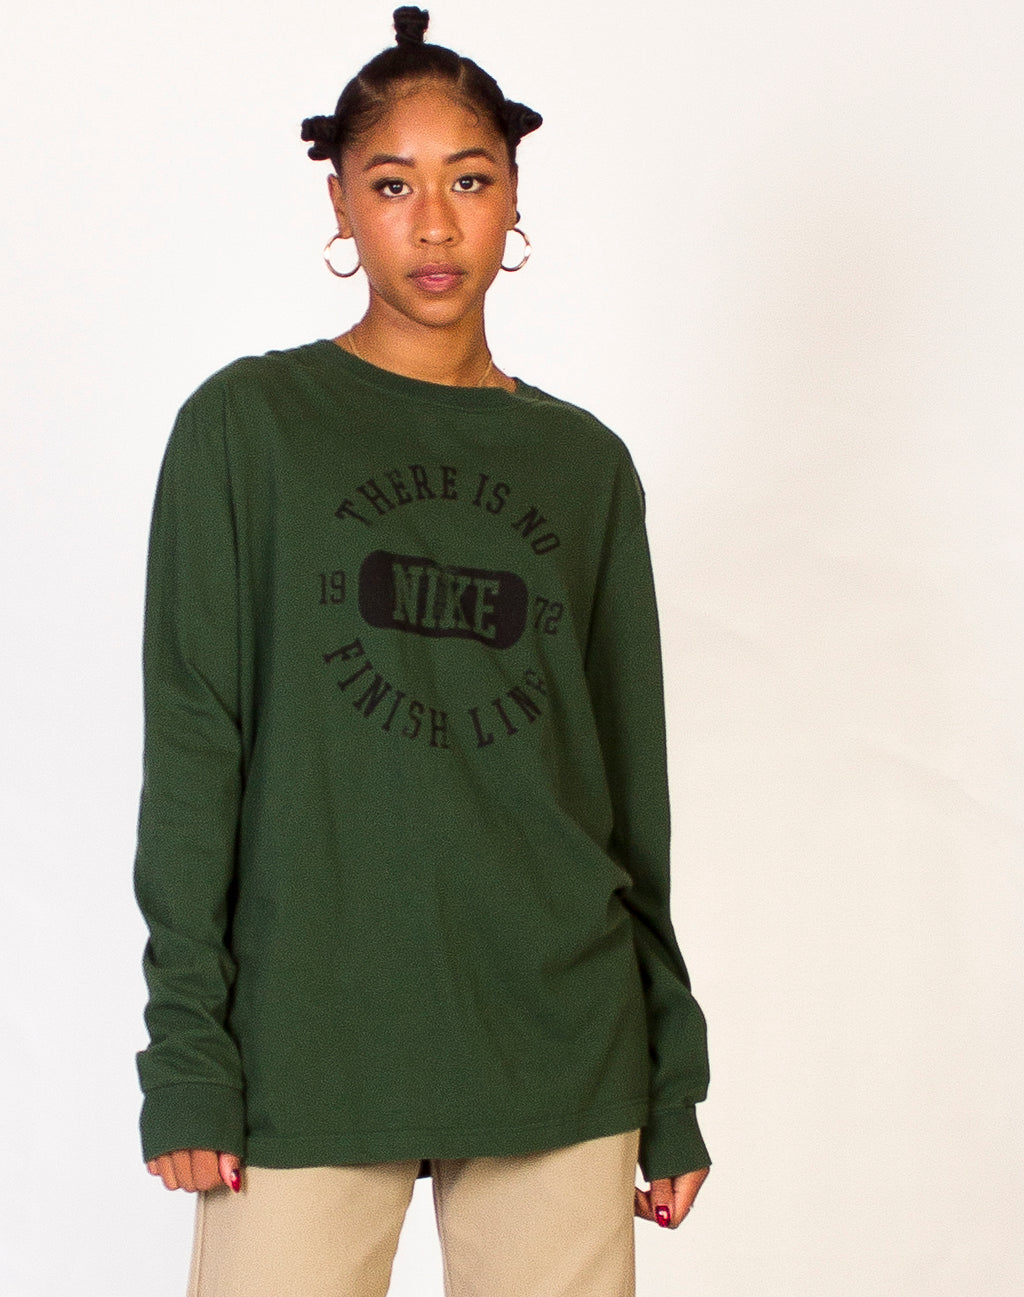 NIKE GREEN LONG SLEEVE TEE